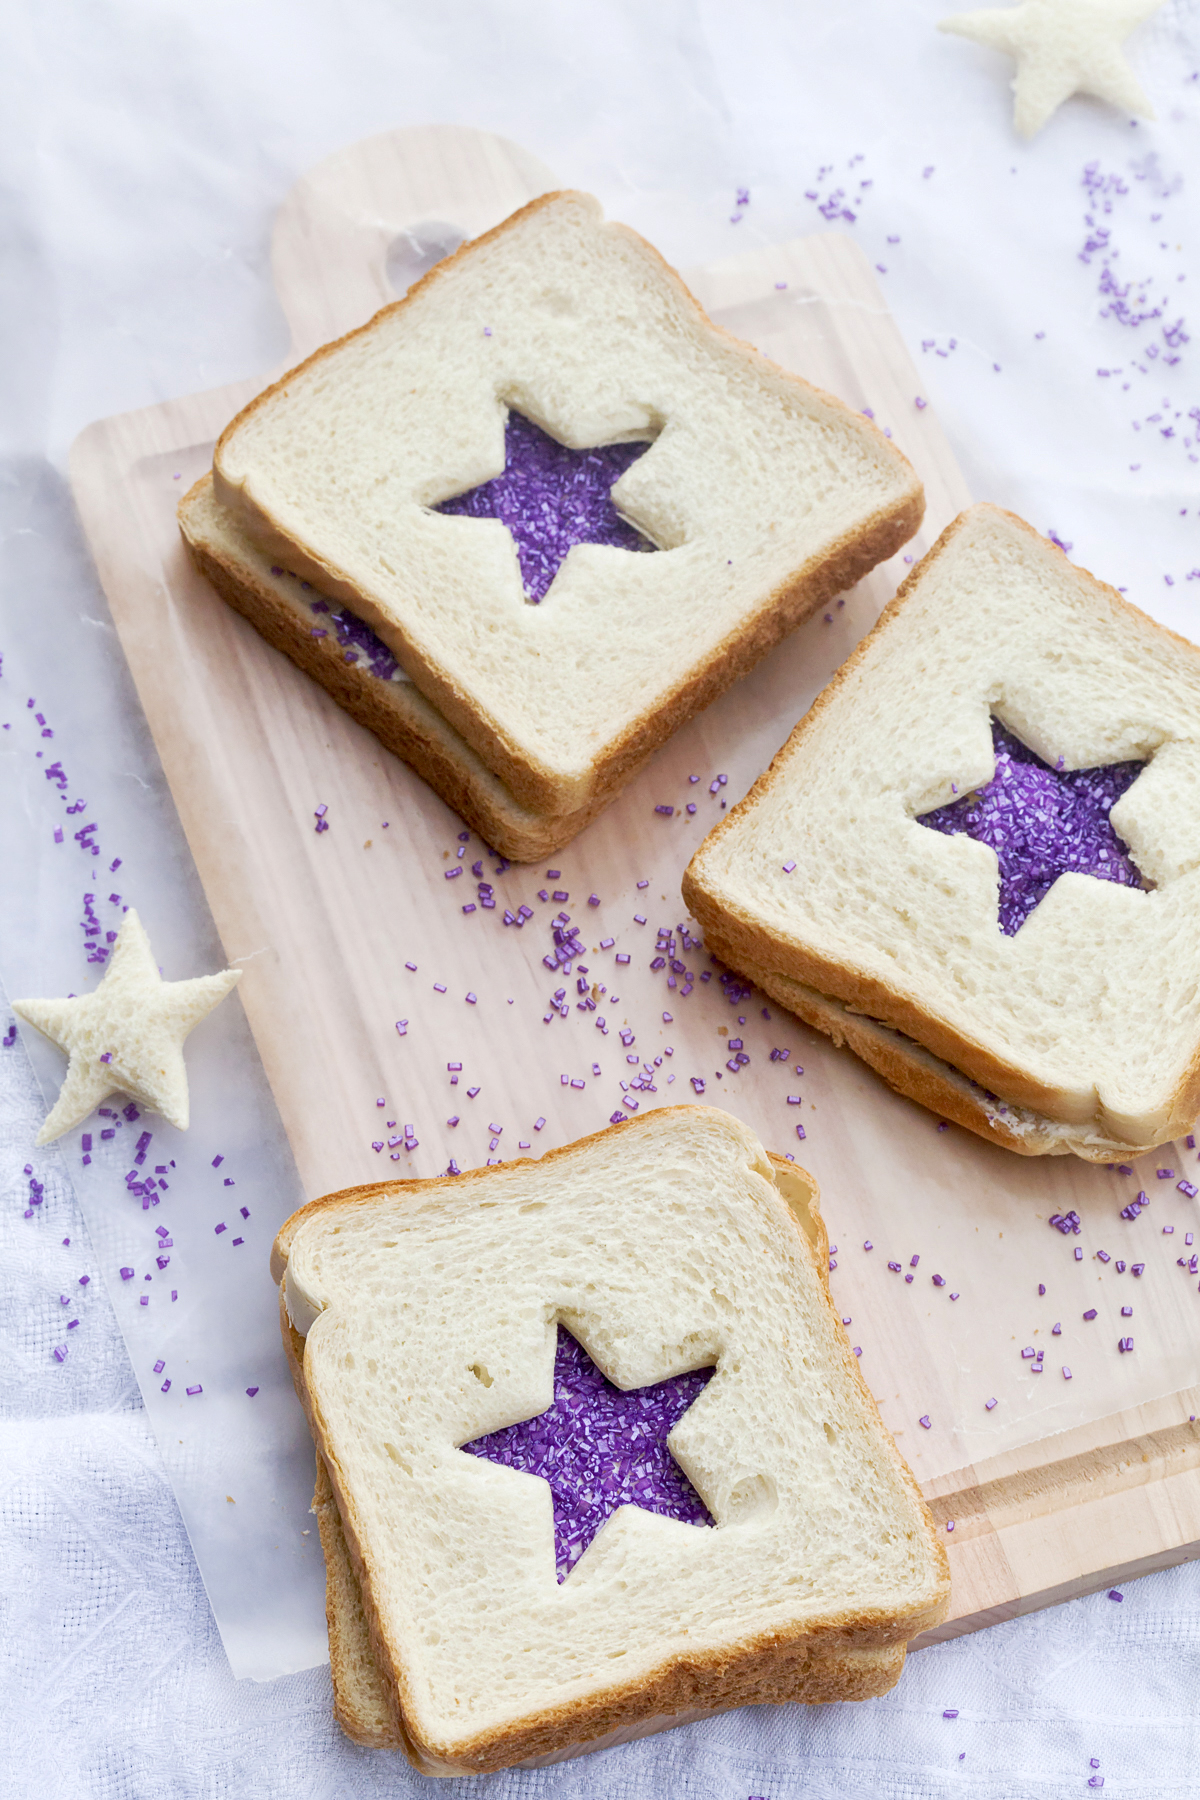 fairy bread sandwiches with Sprinkles and purple star cutouts